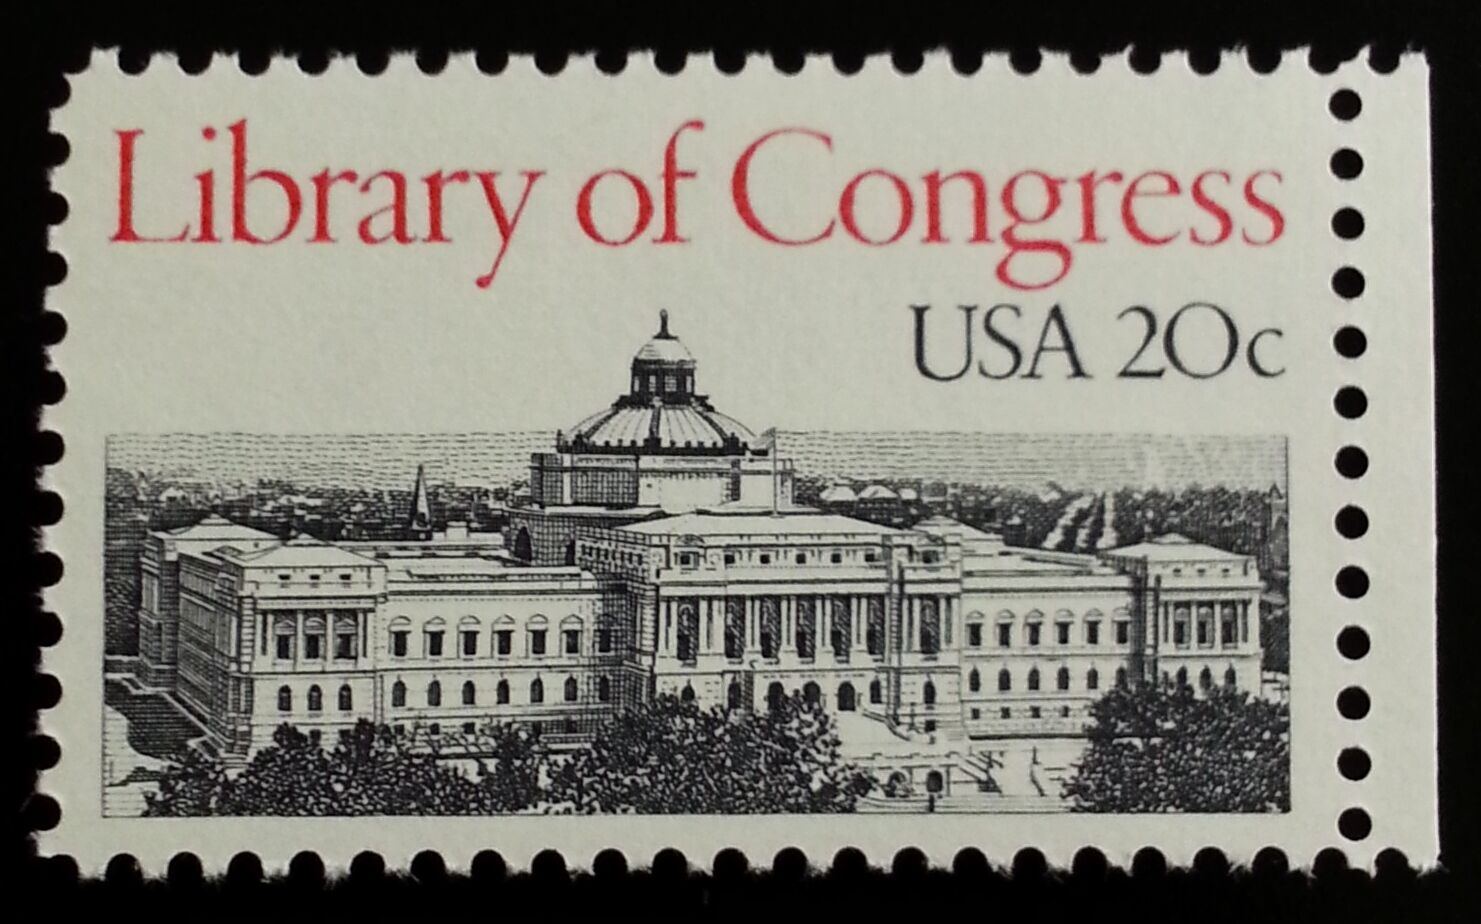 1982 20c Library of Congress, Washington D.C. Scott 200